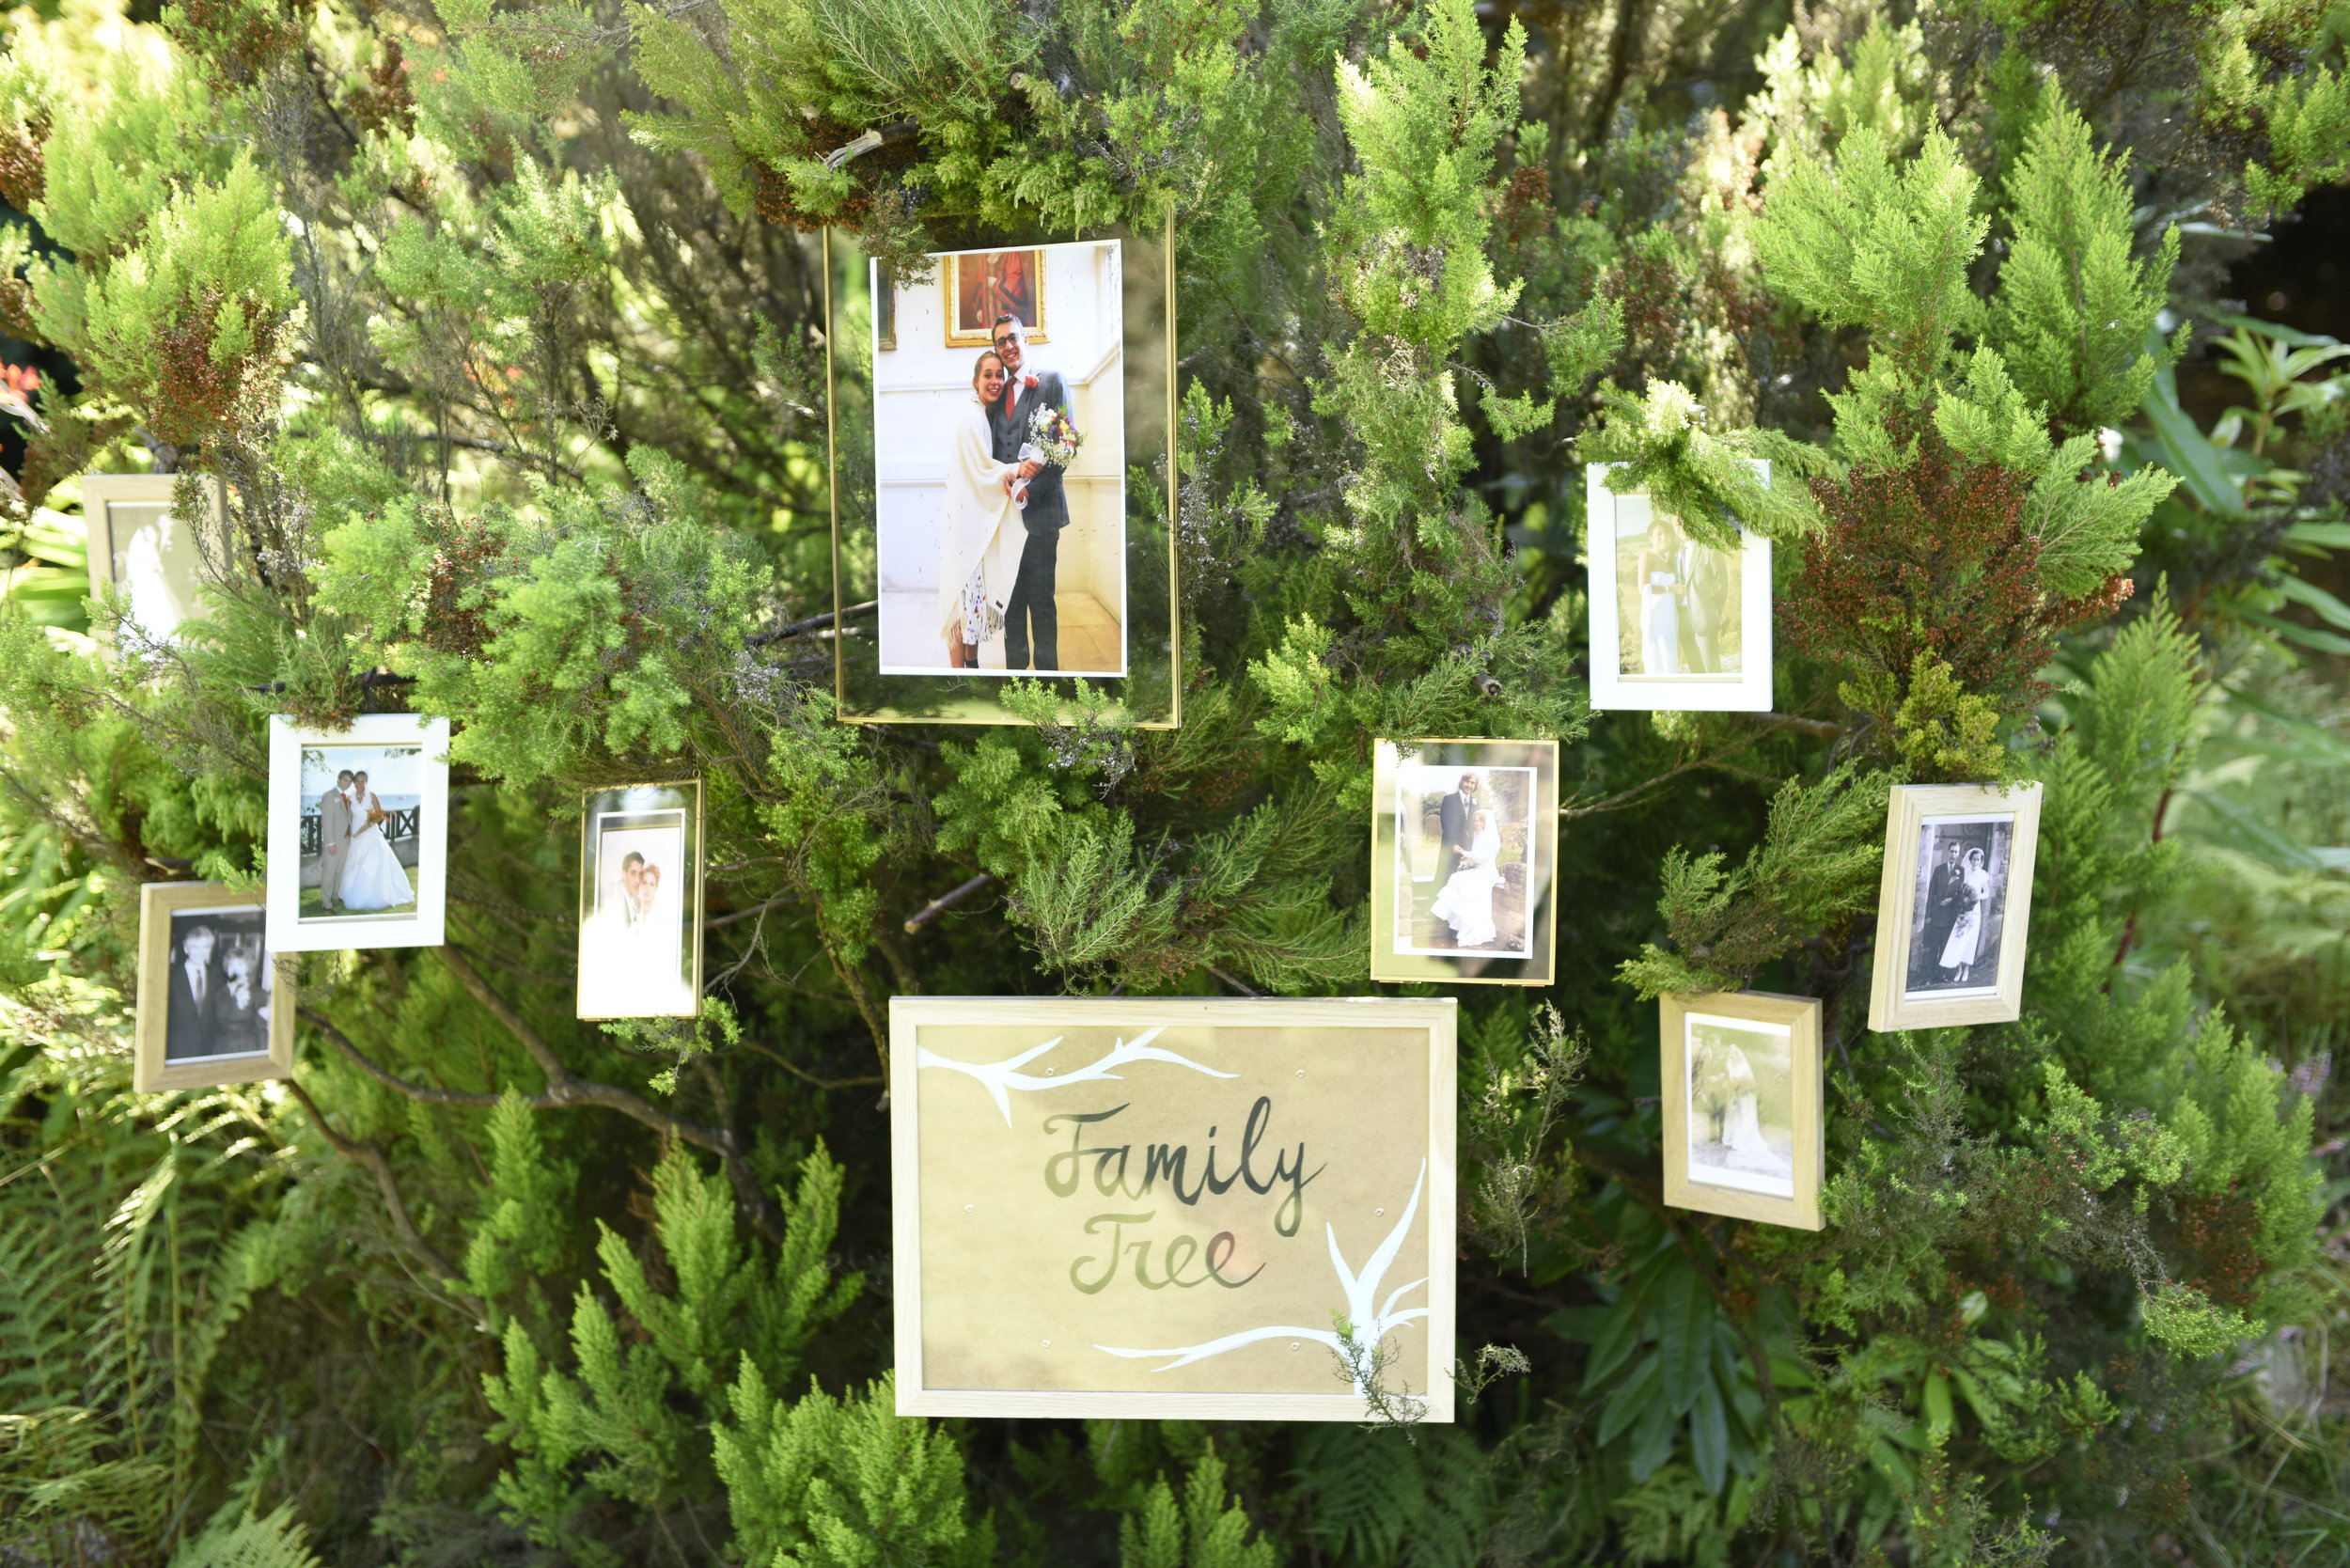 Family Tree. We gathered all the wedding photos of immediate family and hung them around the tree. We love producing thoughtful touches like these.